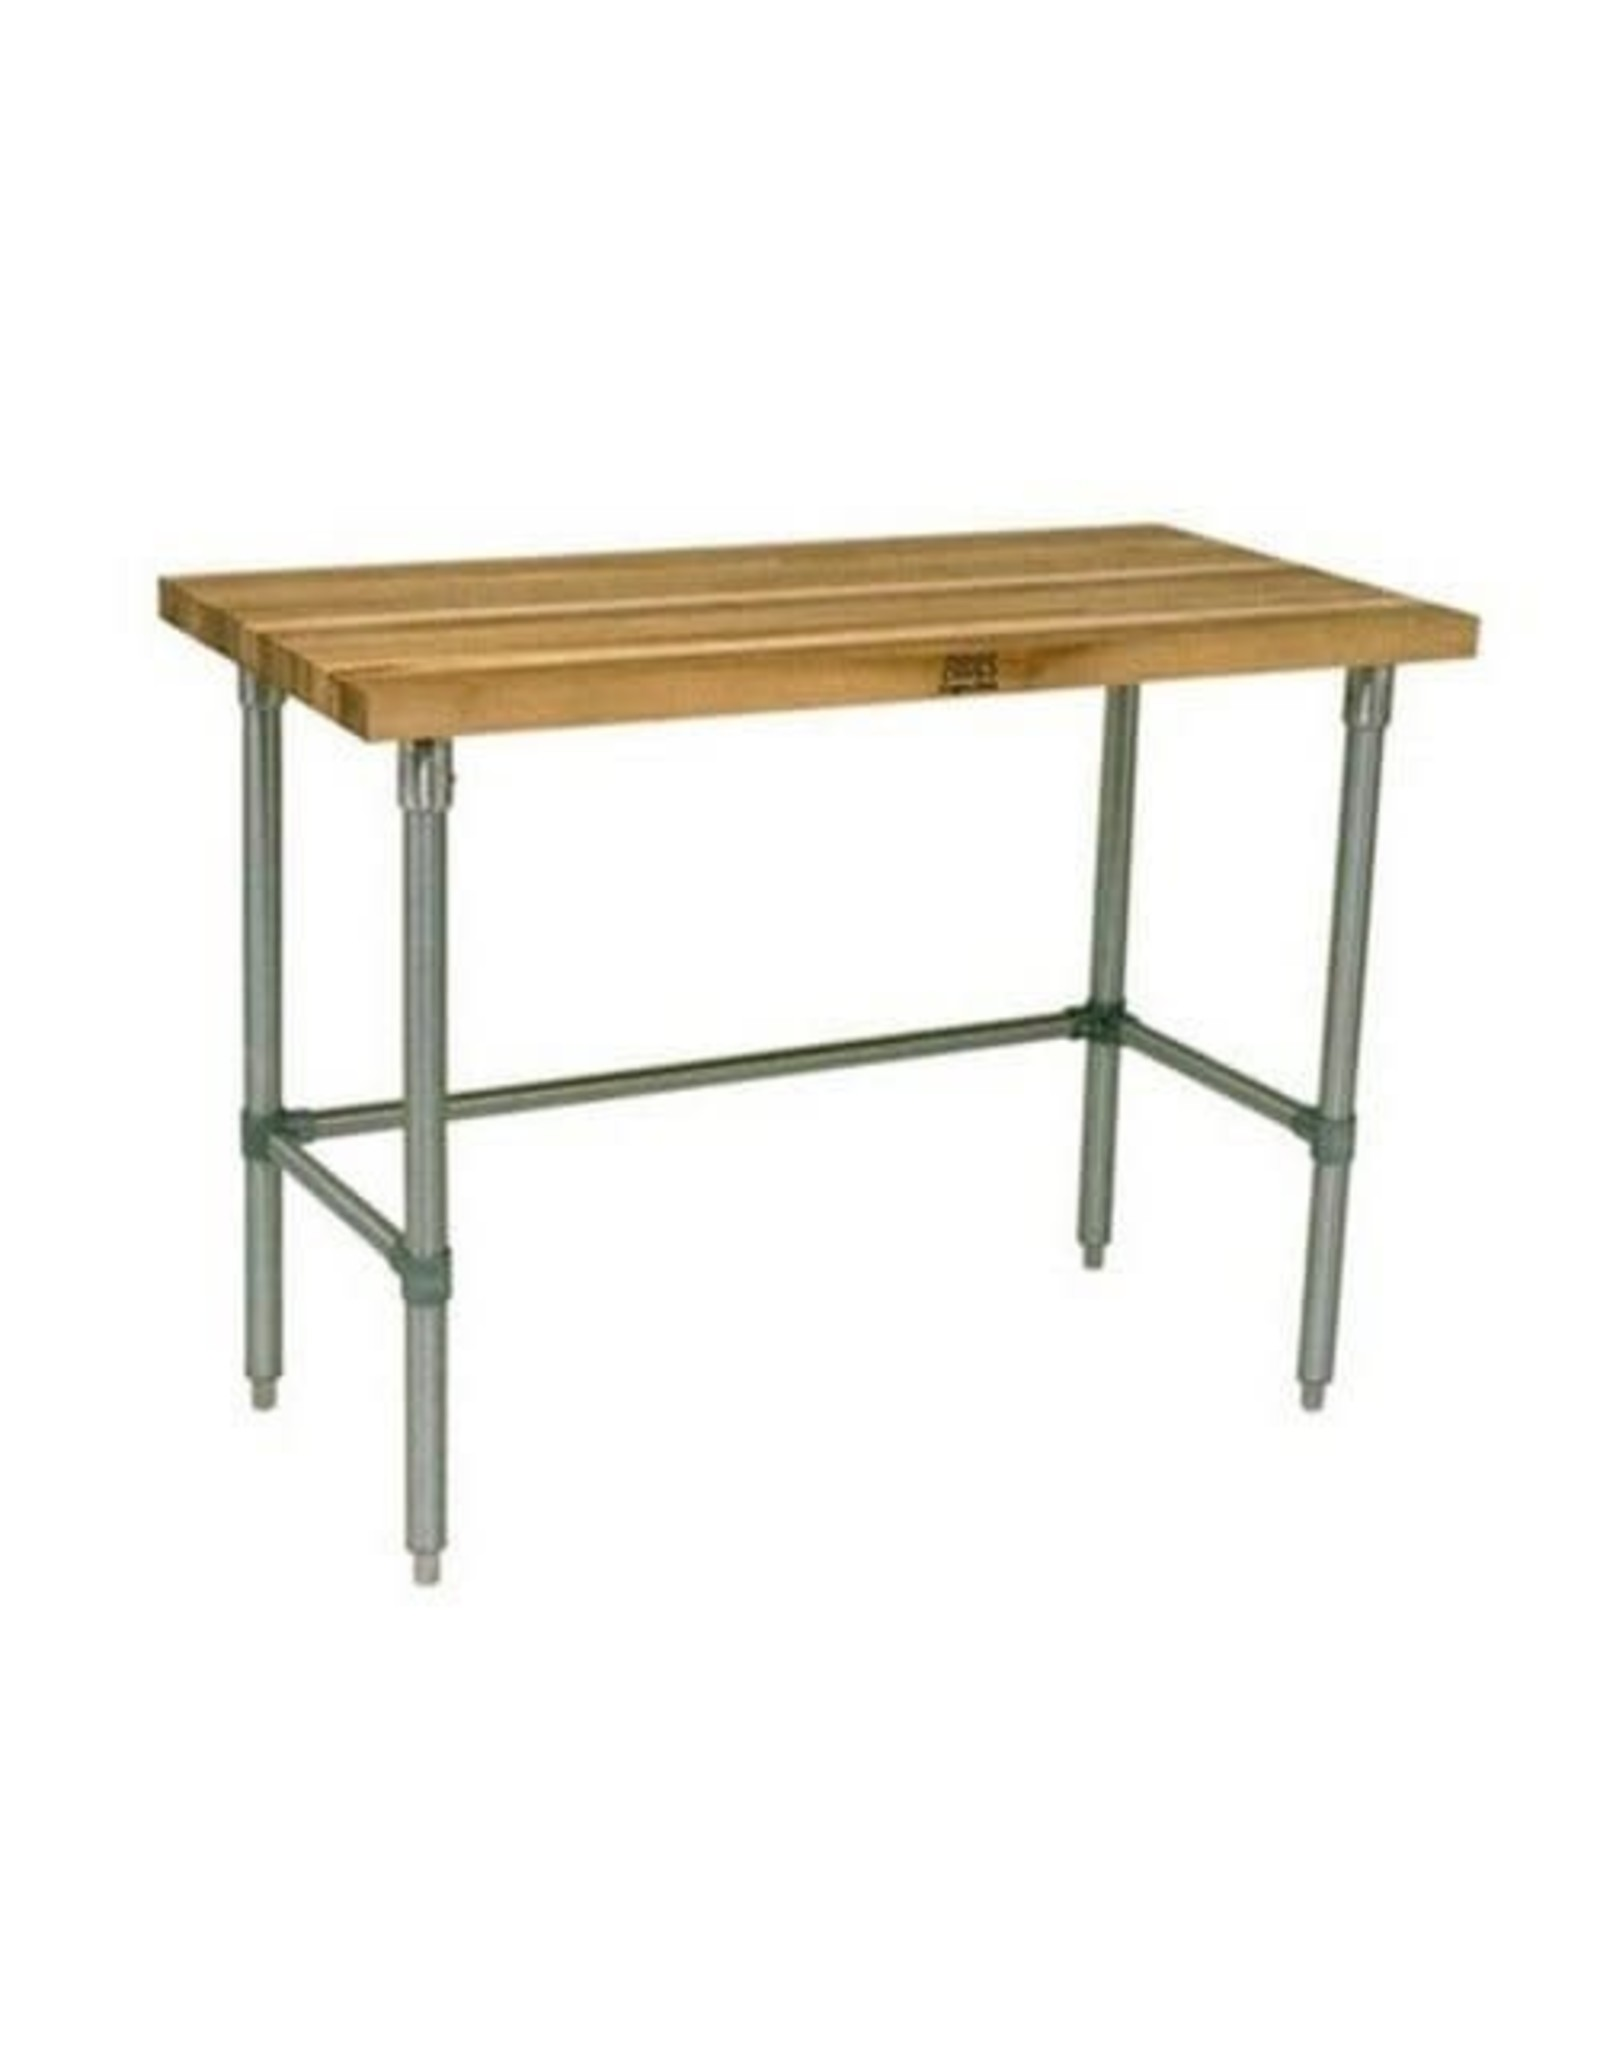 """John Boos John Boos JNB07 Maple Top Work Table with Galvanized Steel Base and Bracing, 36"""" Long x 30"""" Wide x 1-1/2"""" Thick"""